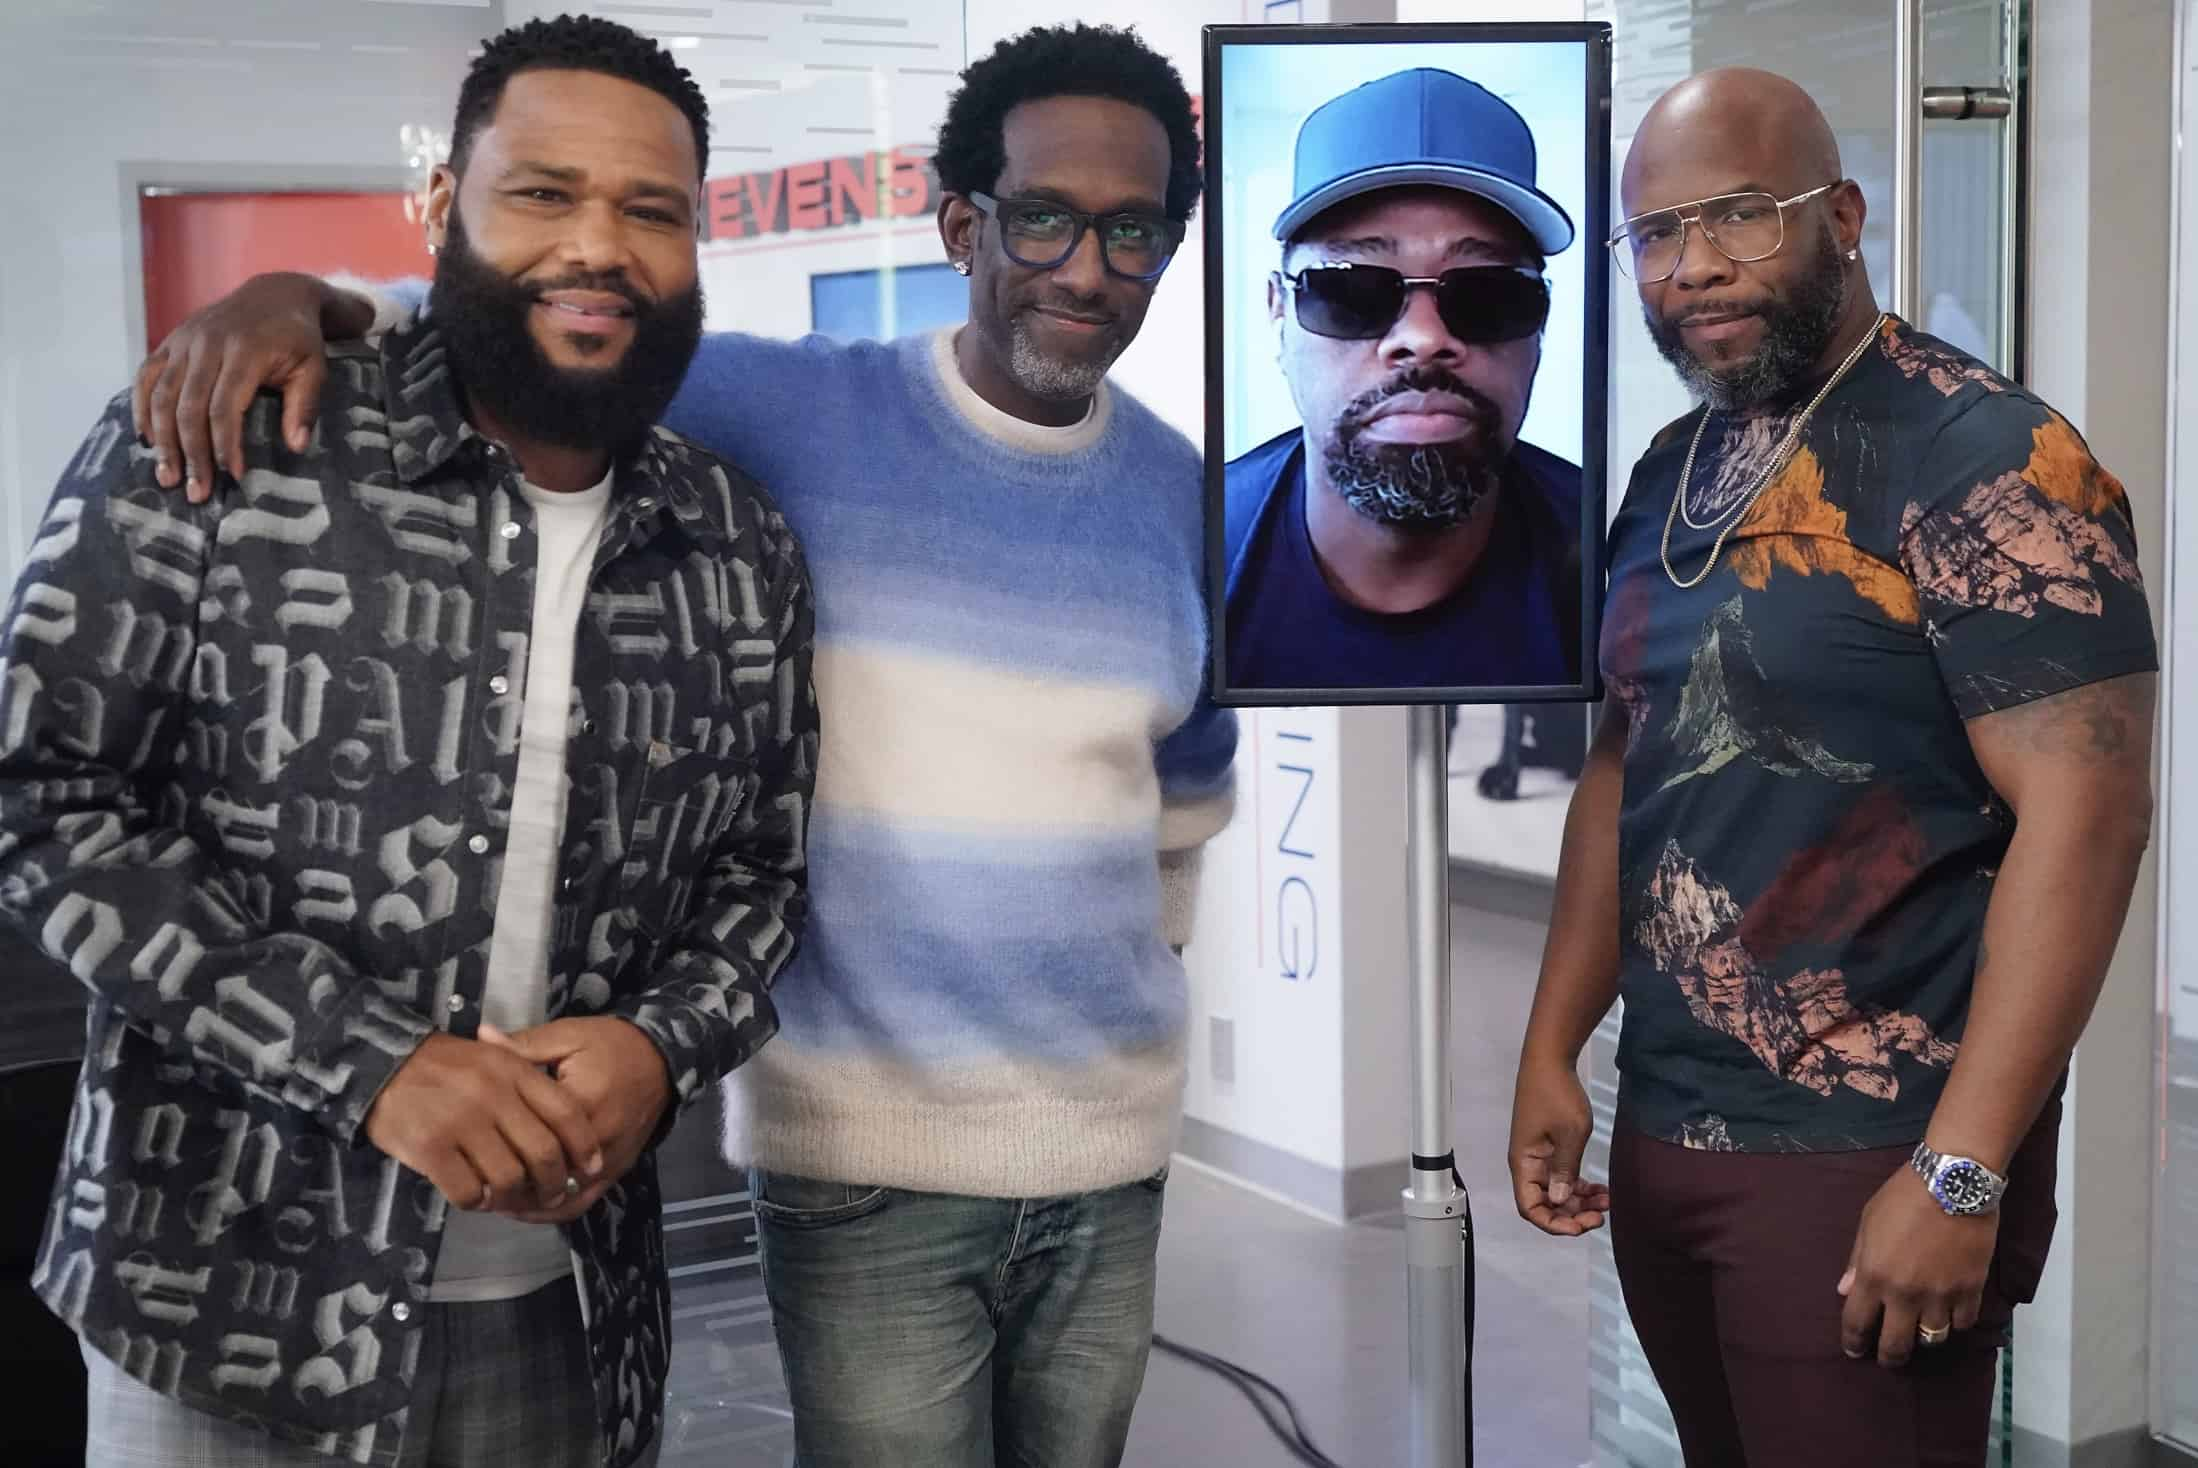 """BLACK-ISH Season 7 Episode 21 - """"Urban Legend"""" – Dre feels pigeonholed to the urban marketing team at Stevens & Lido and realizes he needs to make some big career changes. Boyz II Men stop by the office to help out the team with a SoFi campaign pitch.  Meanwhile, Junior has to deal with the twins who are overstaying their welcome at his and Olivia's apartment on the season finale of """"black-ish,"""" TUESDAY, MAY 18 (9:00-9:30 p.m. EDT), on ABC. (ABC/Richard Cartwright) ANTHONY ANDERSON, SHAWN STOCKMAN, WANYA MORRIS"""